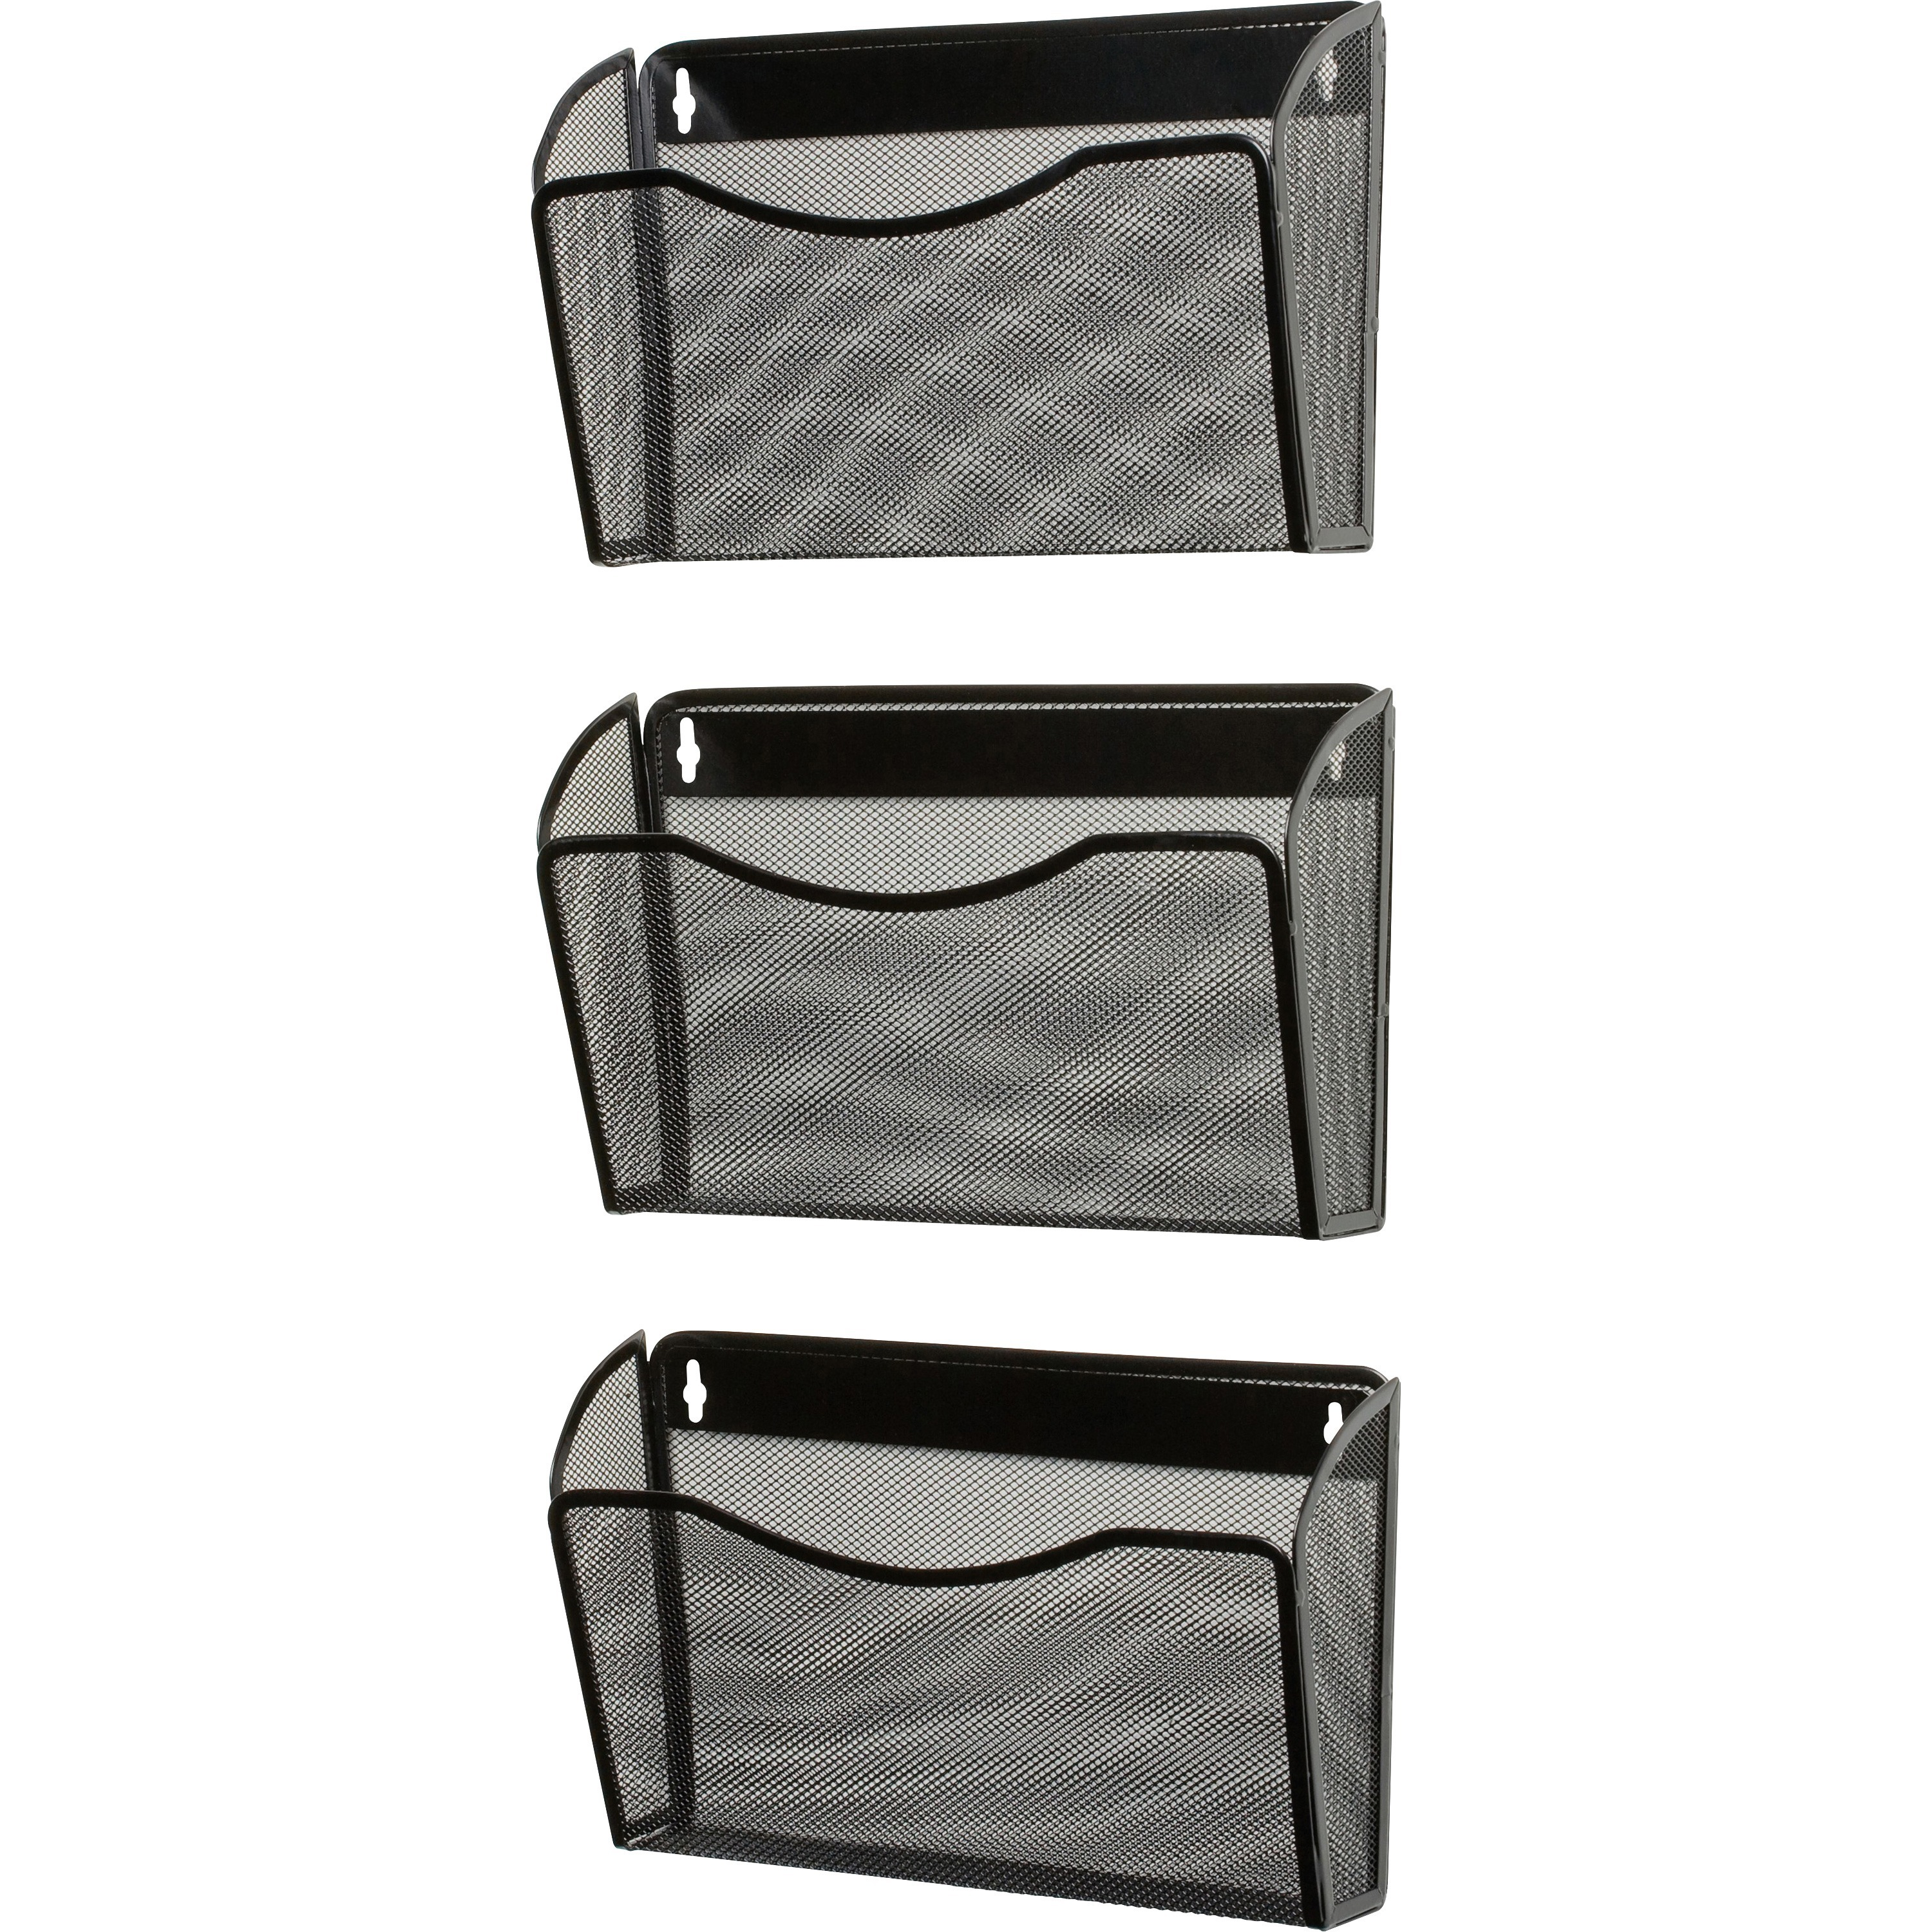 Rolodex, ROL21961, Expressions Mesh 3-Pack Hanging Wall Files, 1 Each, Black